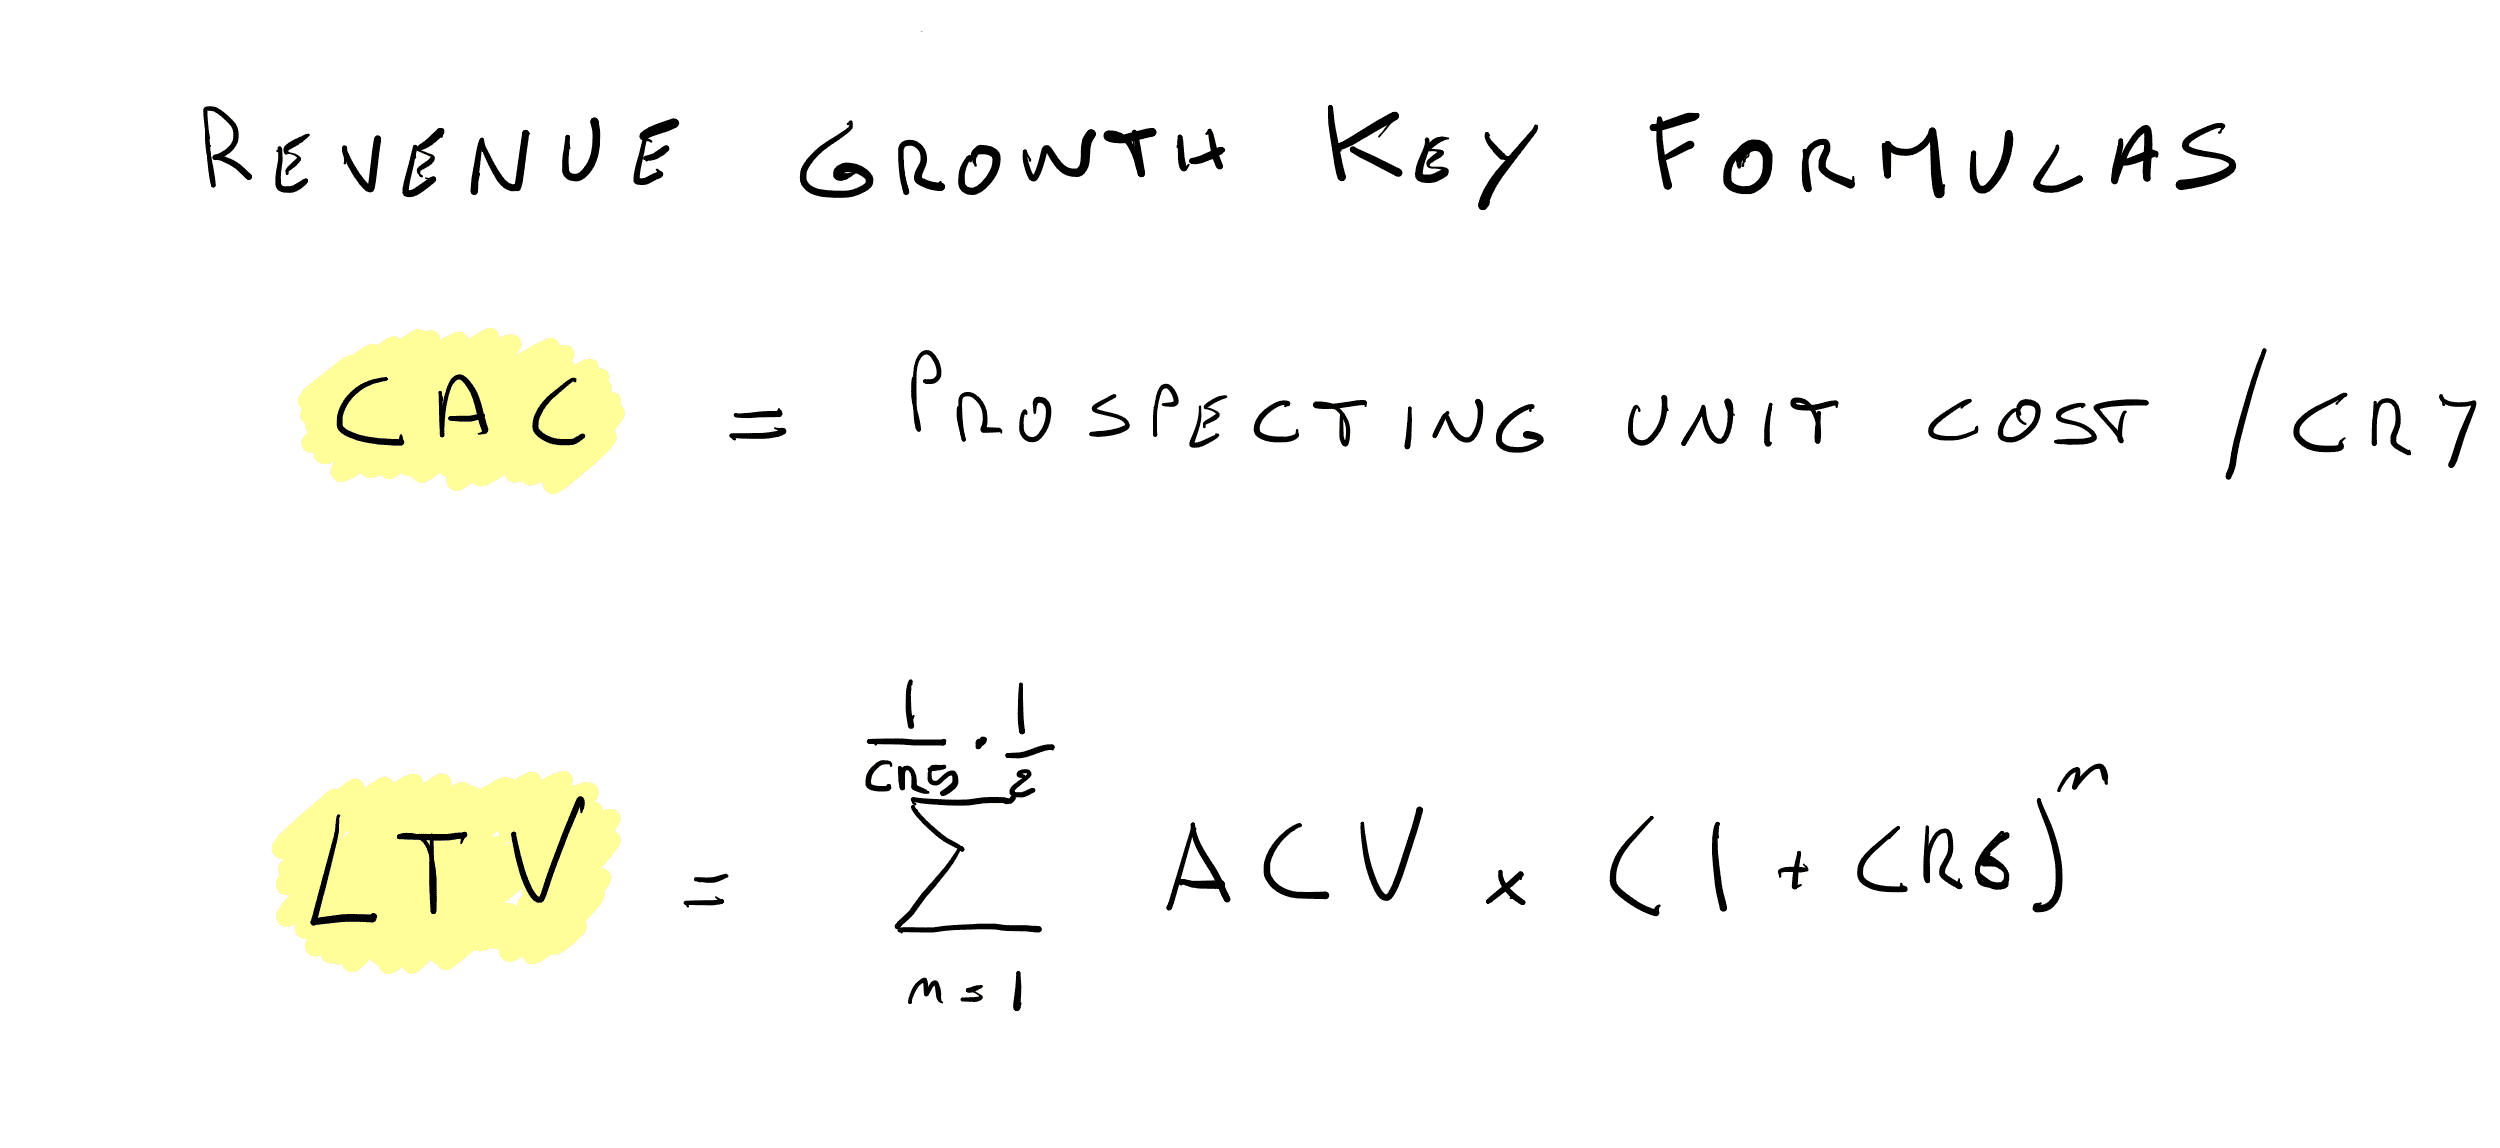 Revenue Growth Key Formulas